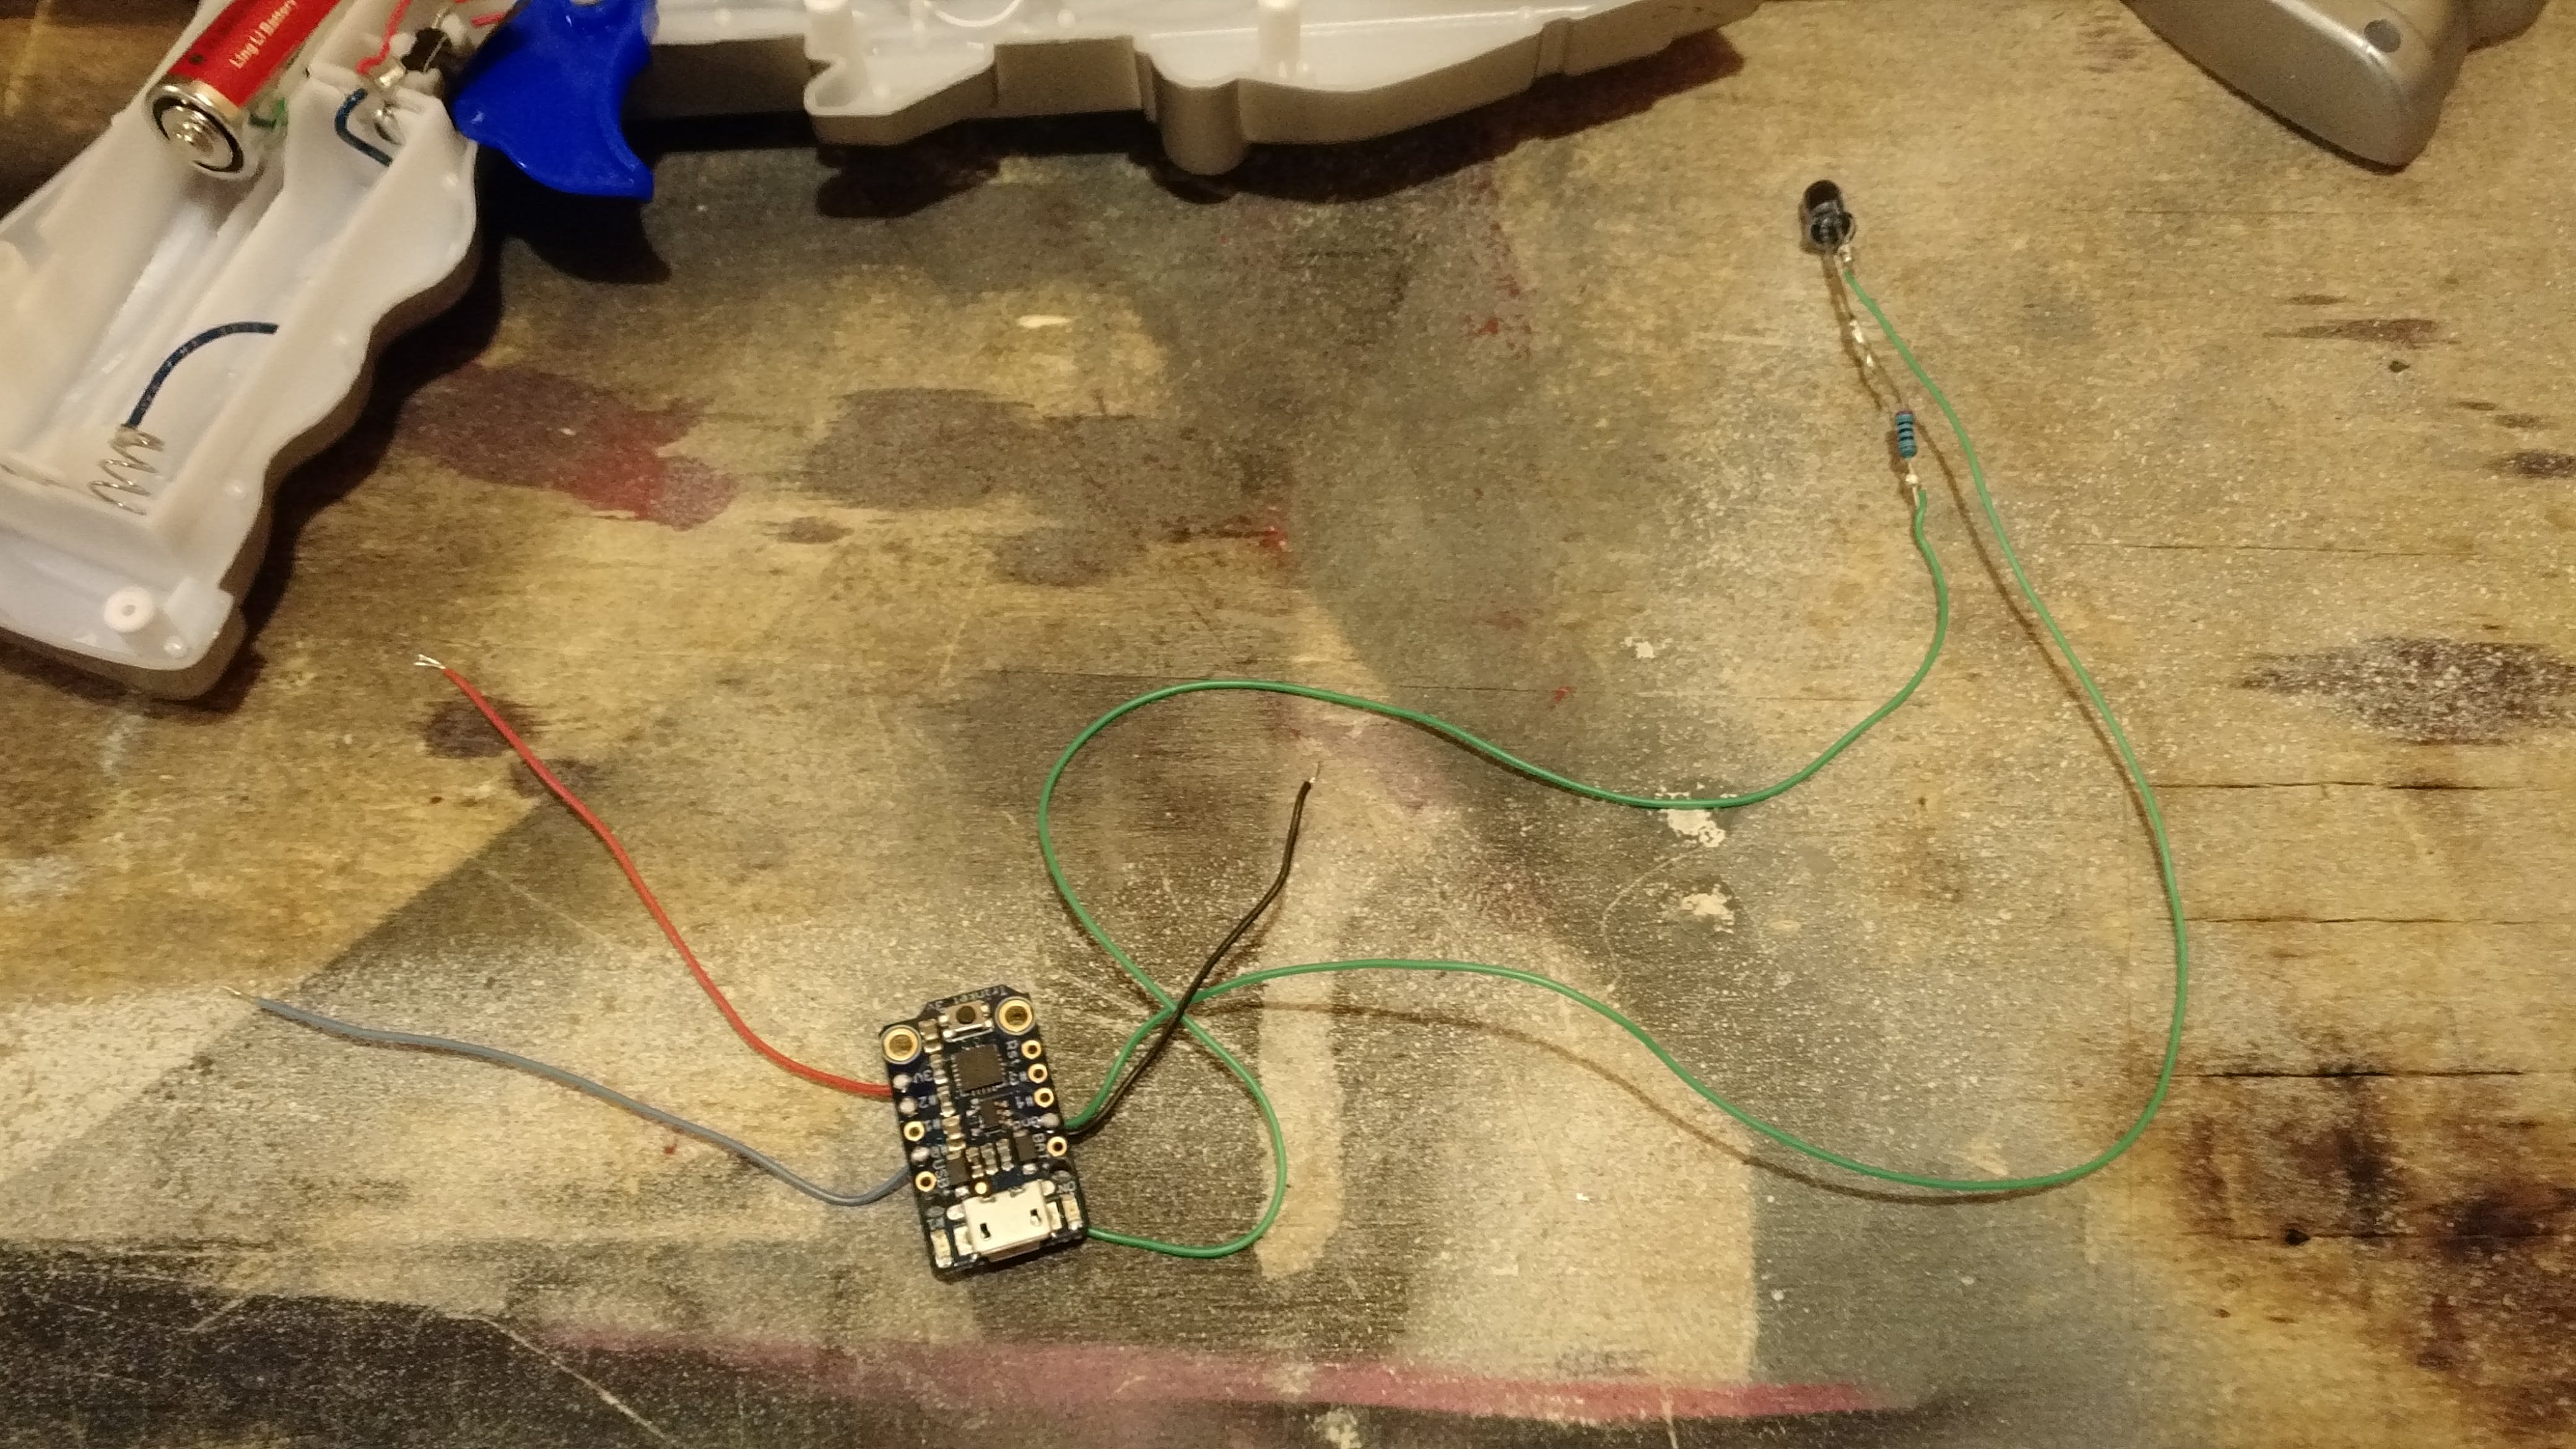 Trinket wired up with the IR LED, power, ground, and trigger sense lines